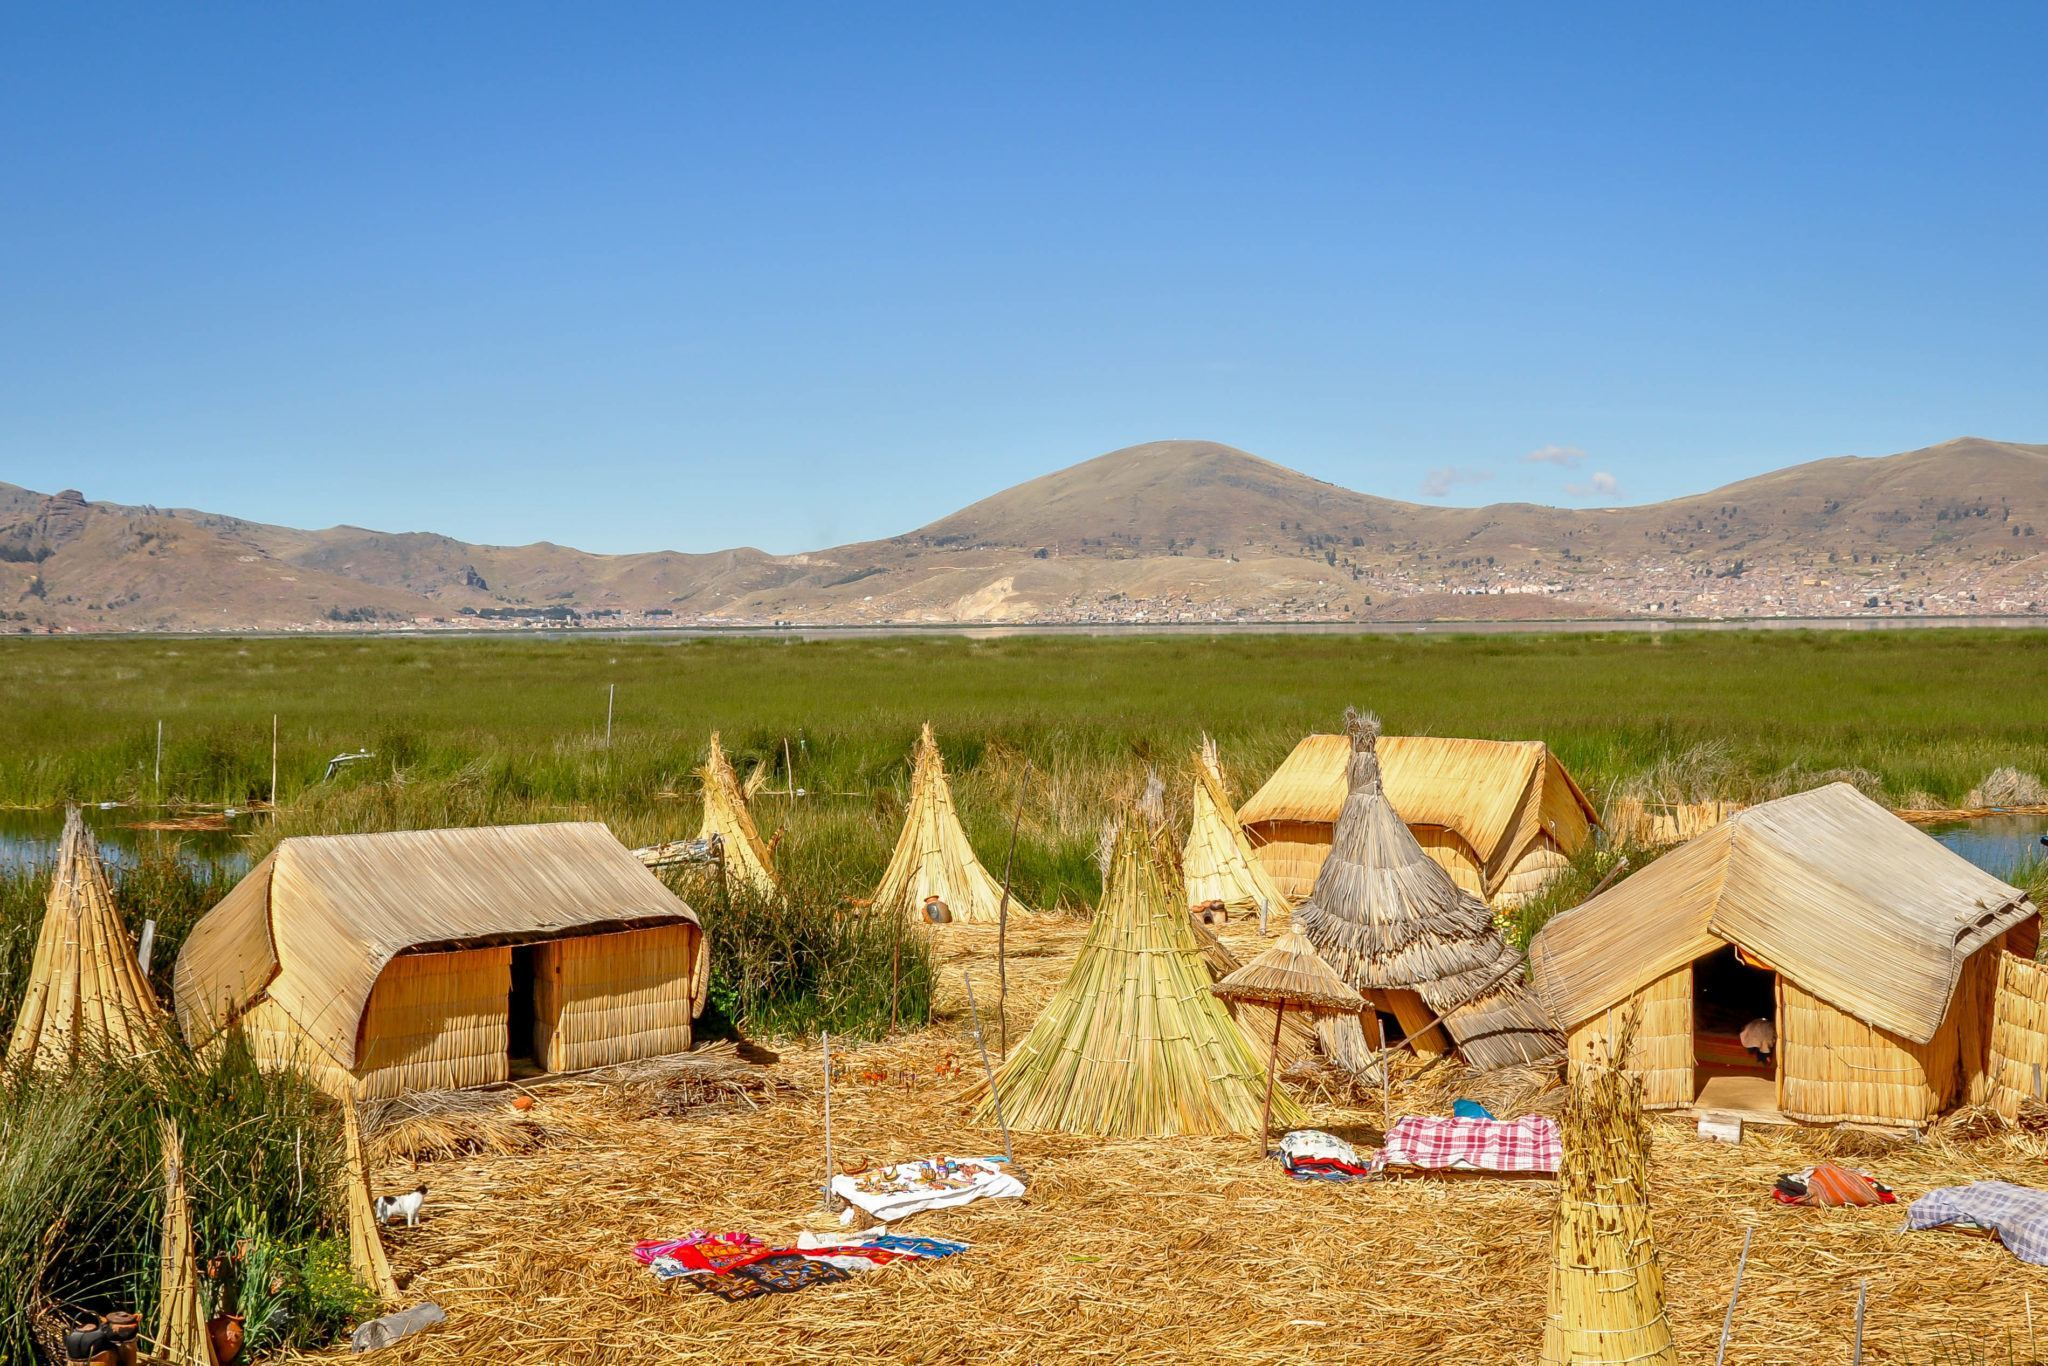 Huts in a community on the floating Uros Islands in Lake Titicaca